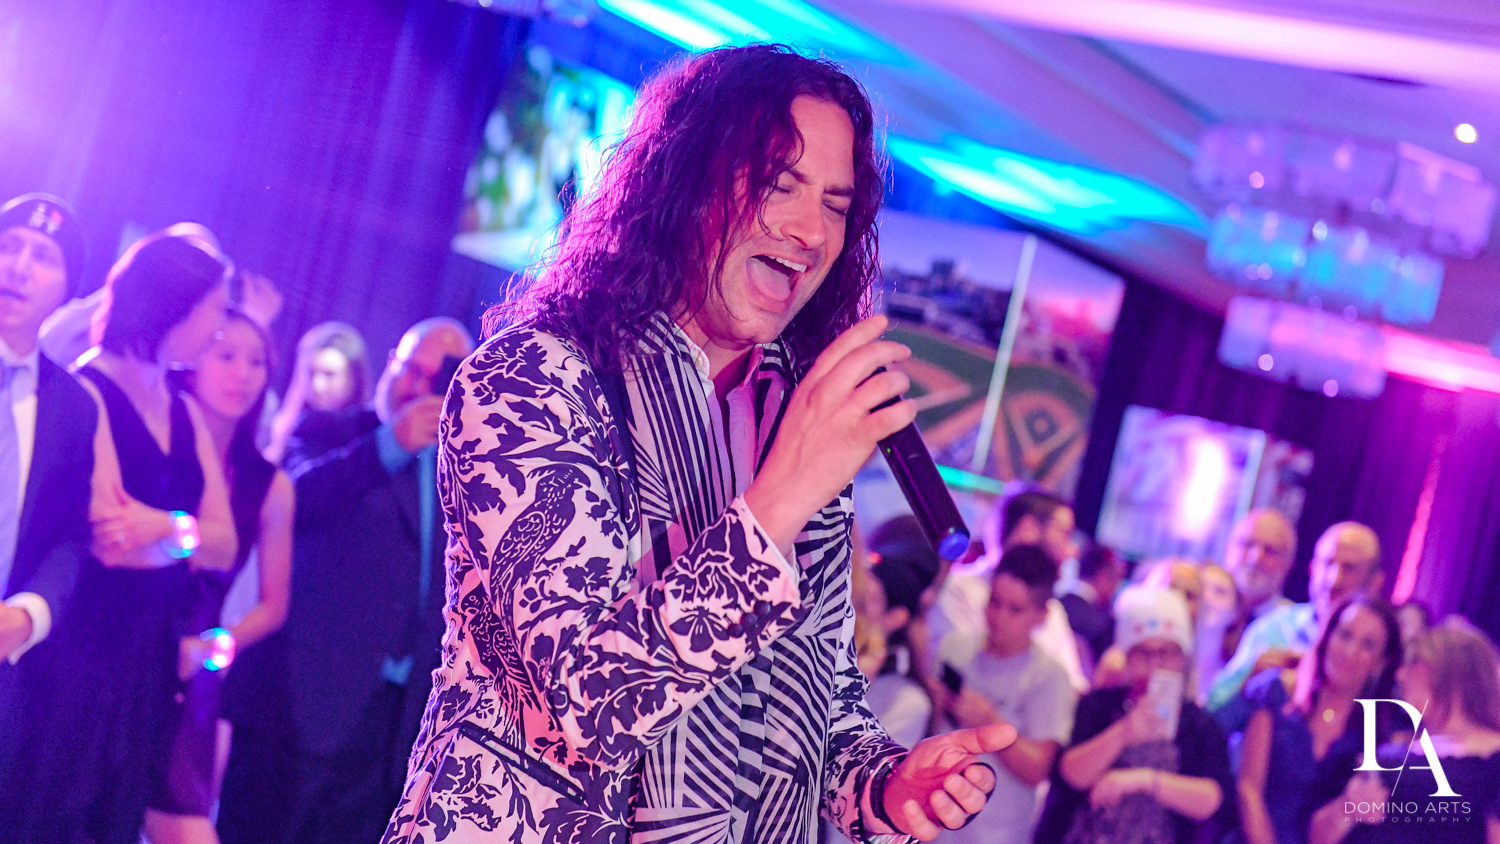 Constantine Maroulis Ameican Idol at New York Theme Bat Mitzvah at Woodfield Country Club, Boca Raton by Domino Arts Photography